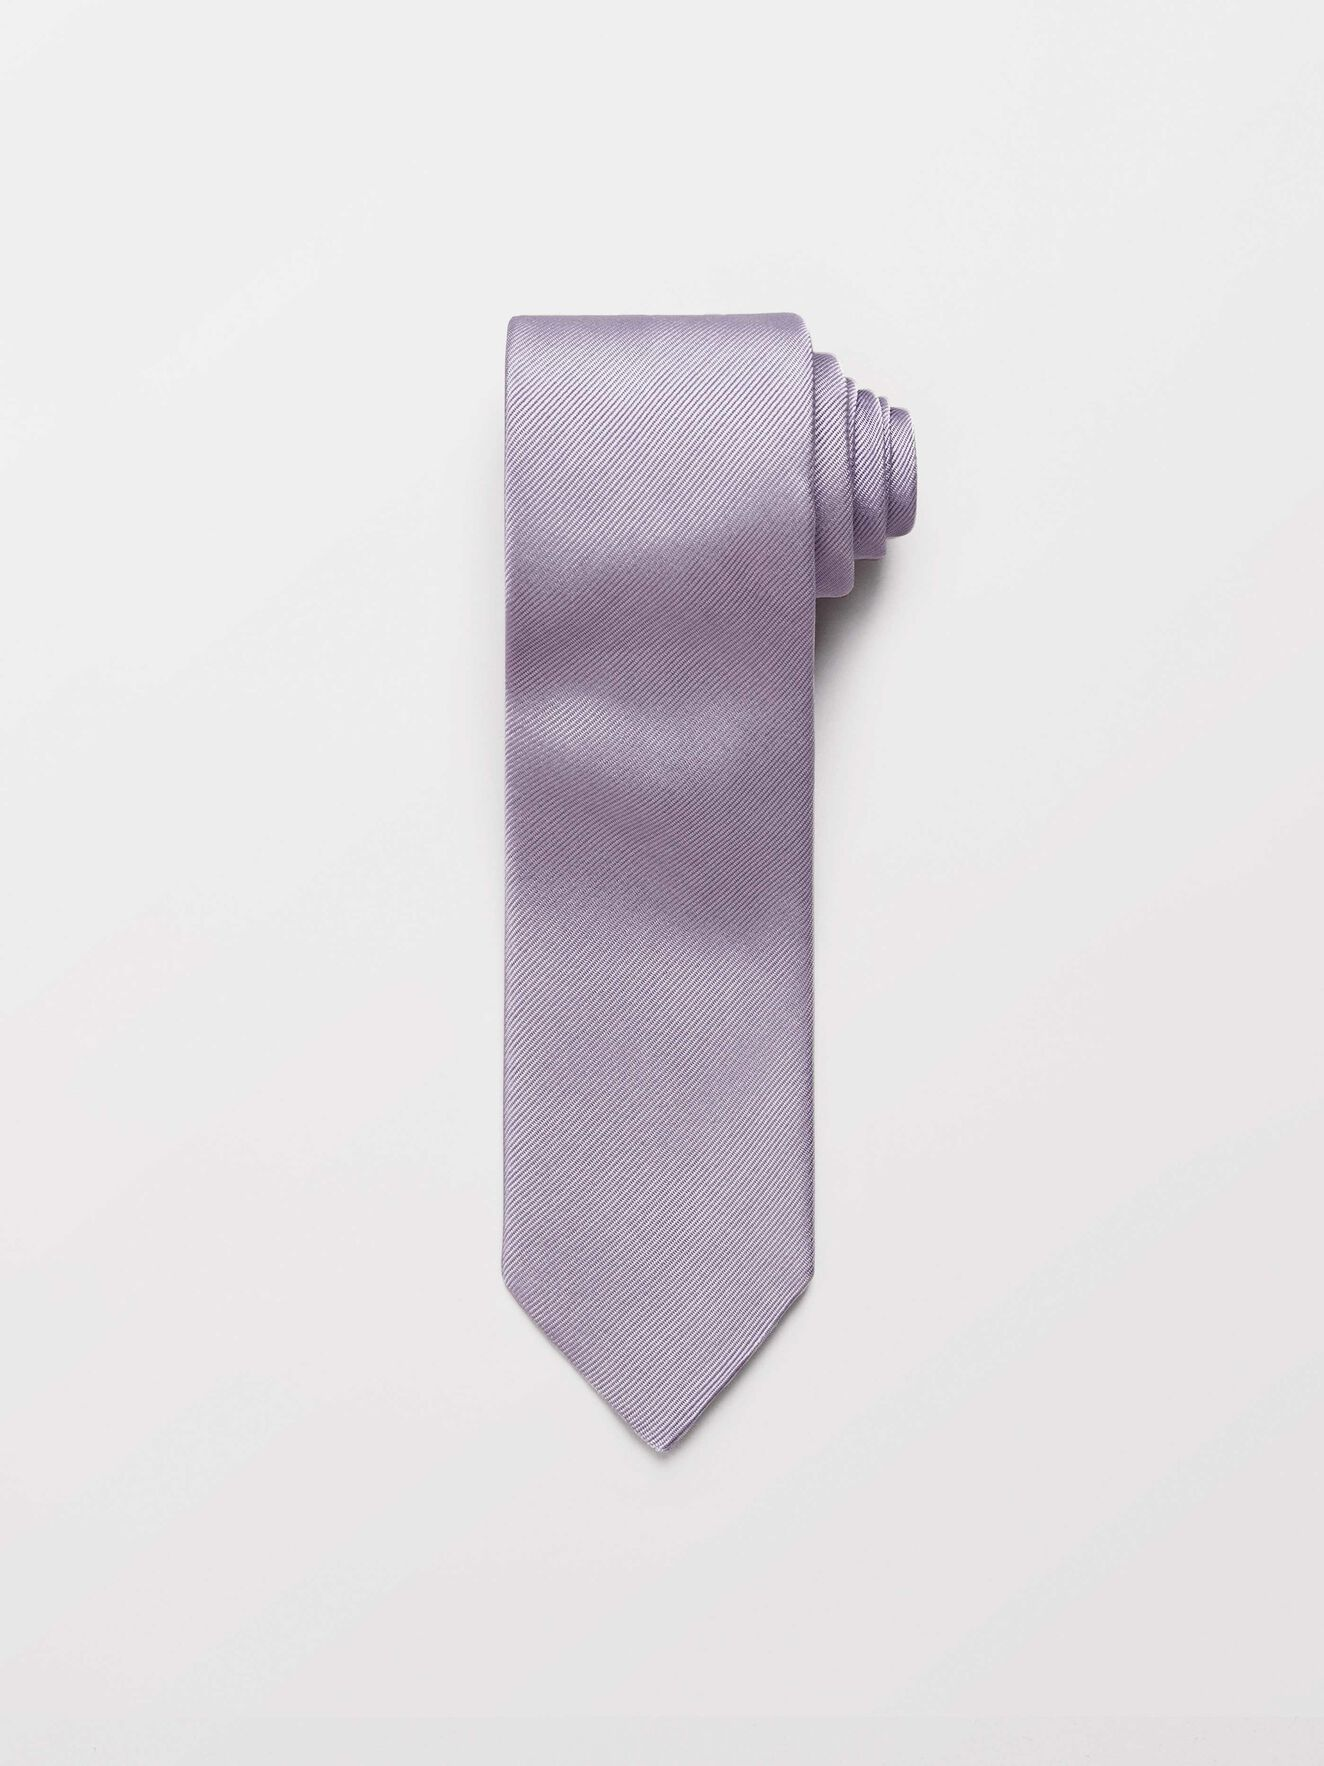 Tellar Tie in Purple Air from Tiger of Sweden